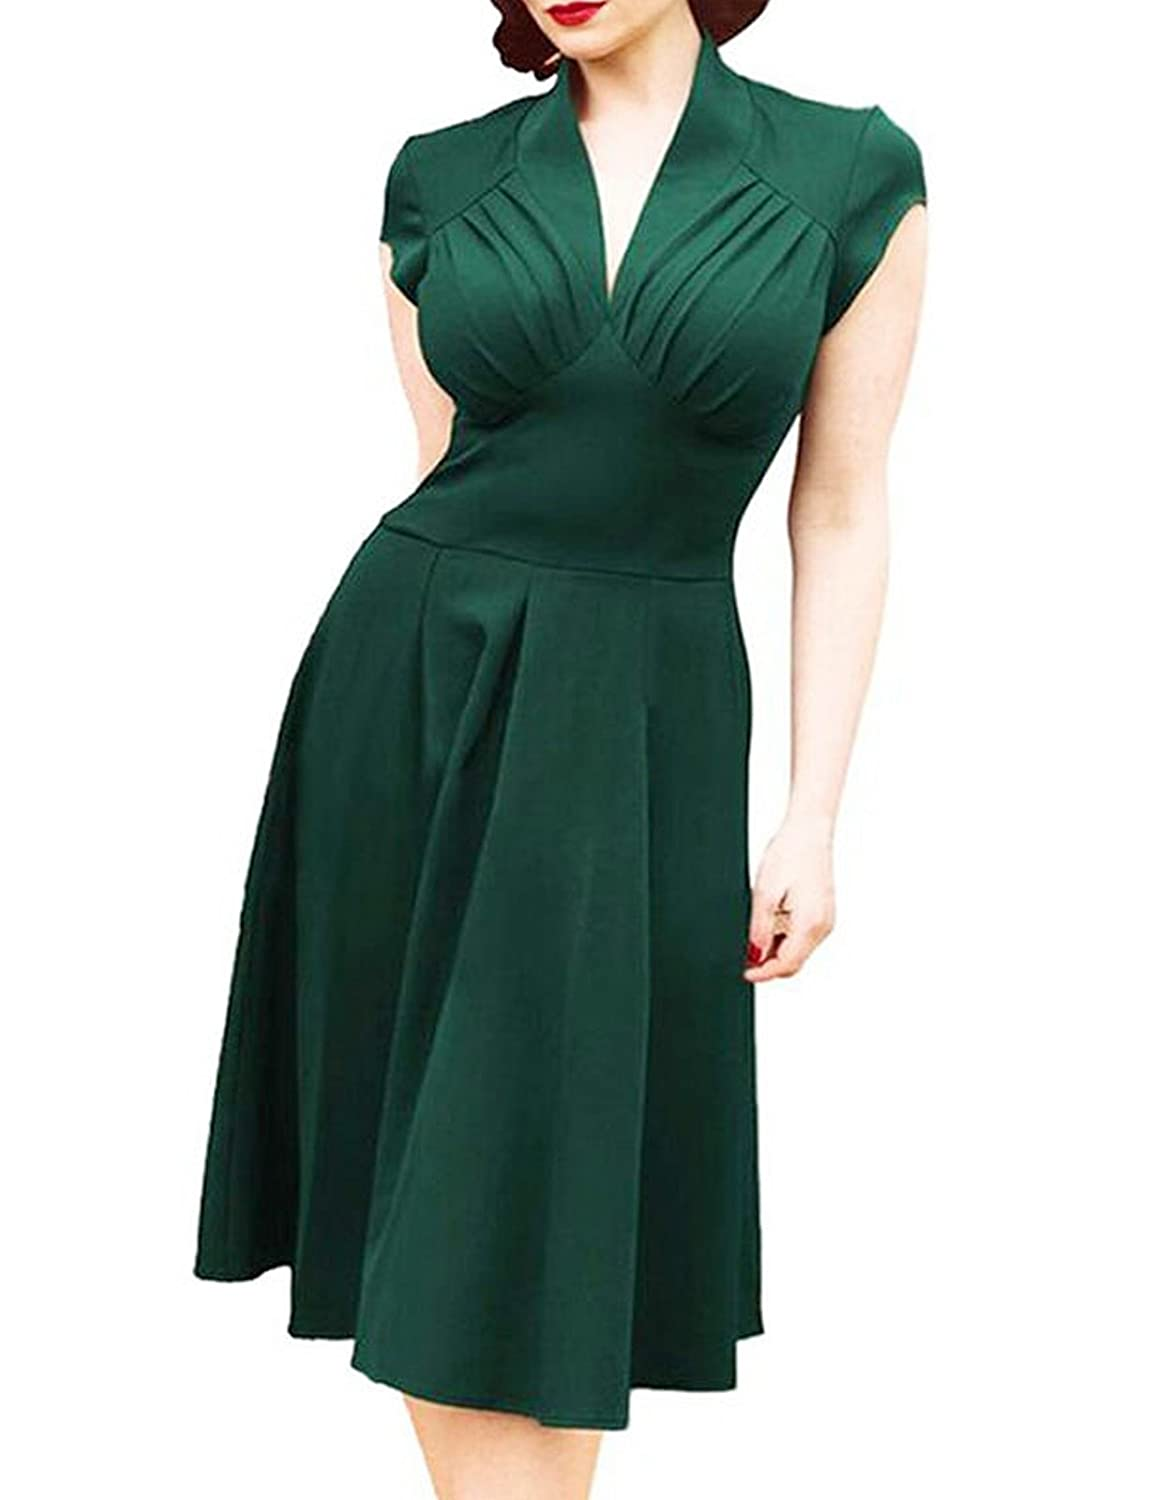 Retro 50er Jahre Damen Kurzarm Sommer Abendkleid Swing Kleider Rockabilly Cocktailkleid Stretch Business Kleid